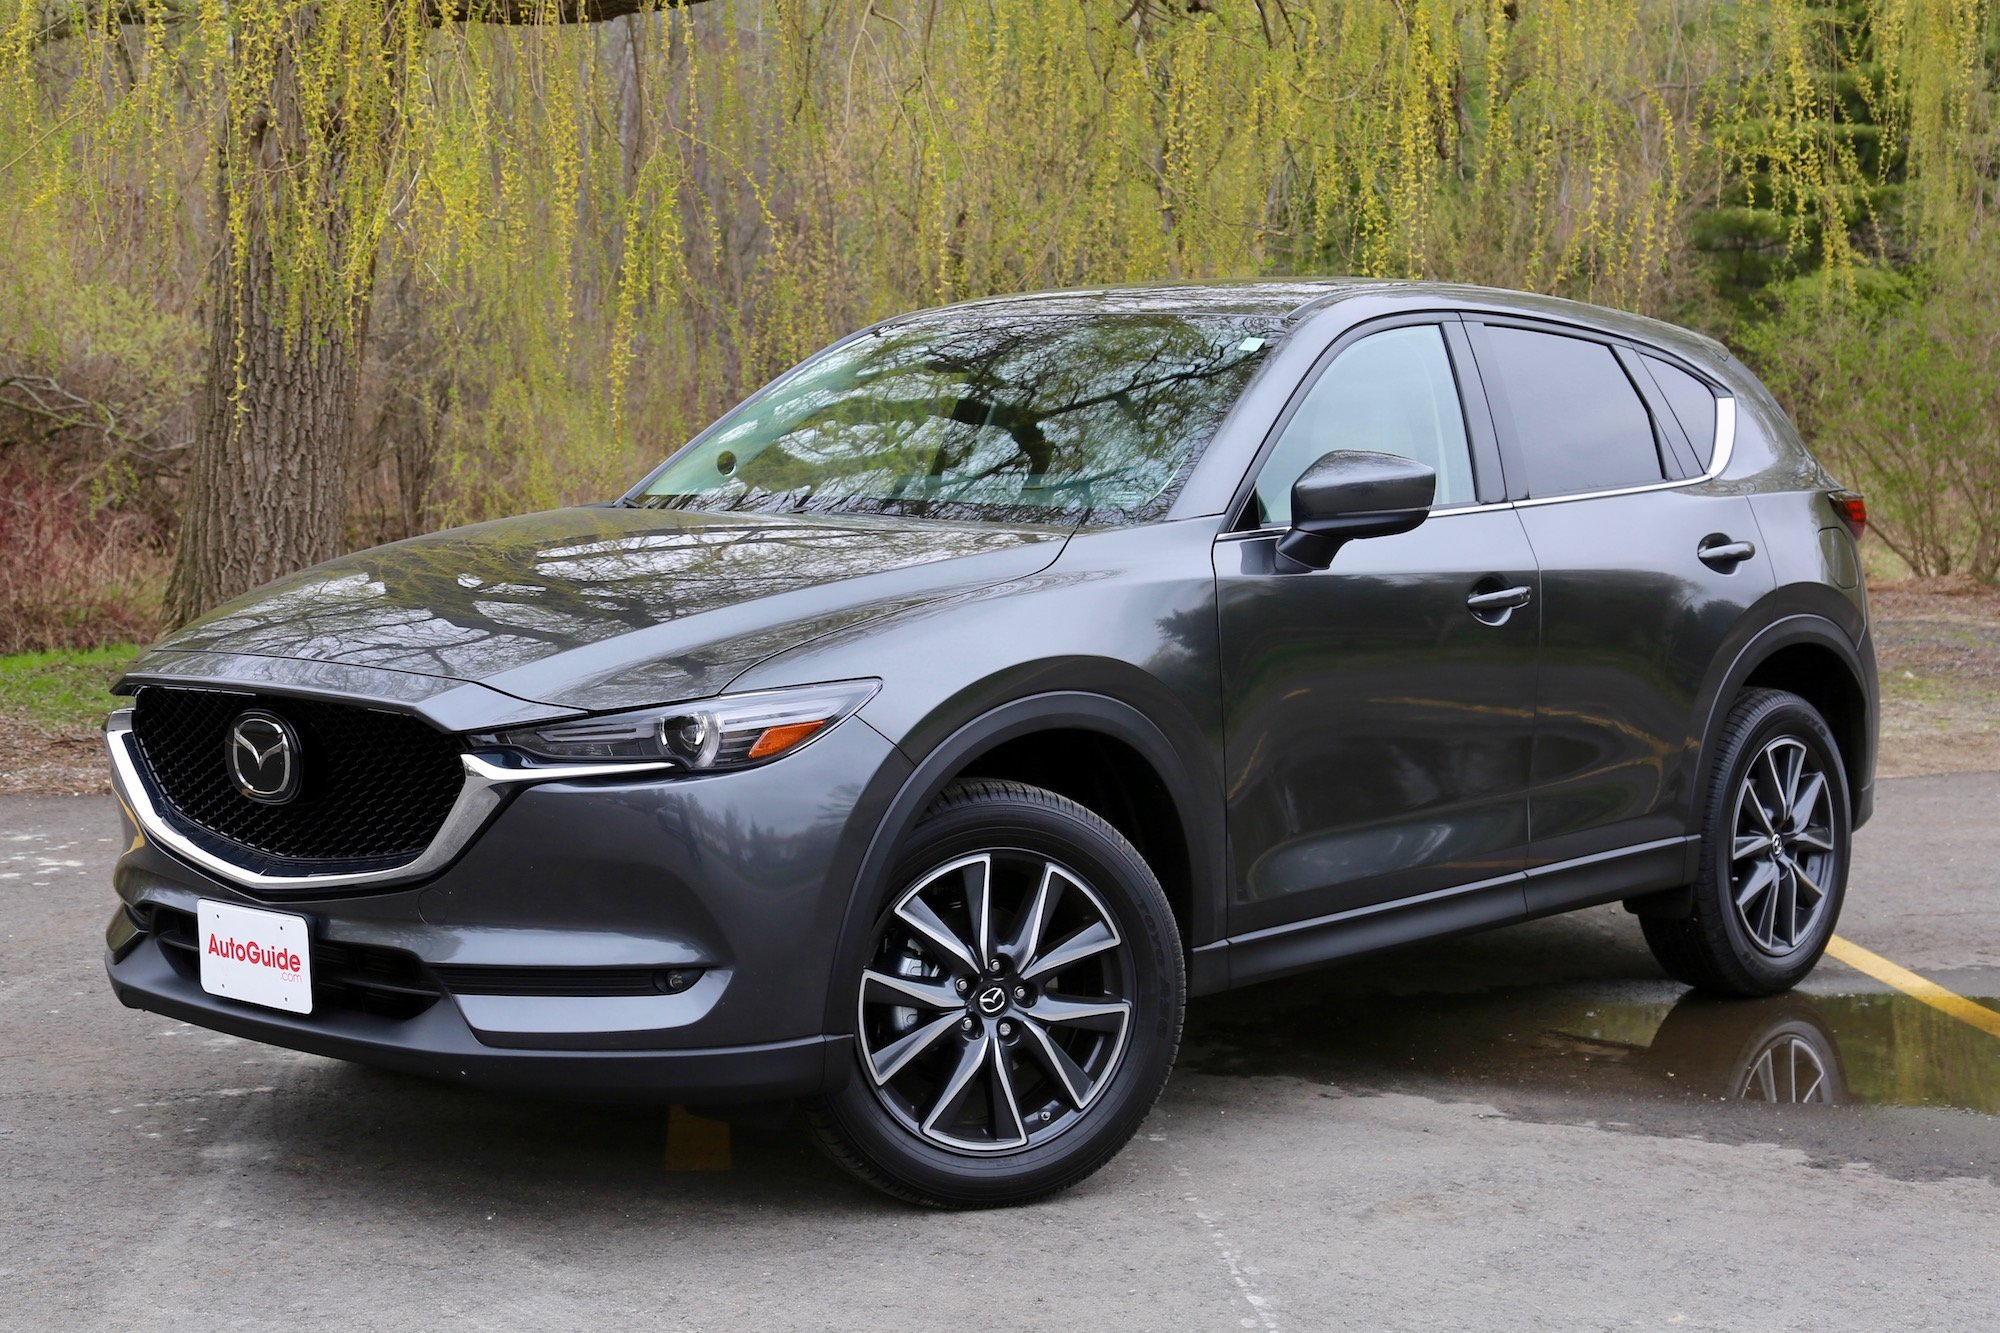 100 2017 mazda cx 5 review all new mazda cx 5 unveiled in los angeles 2016 los angeles. Black Bedroom Furniture Sets. Home Design Ideas